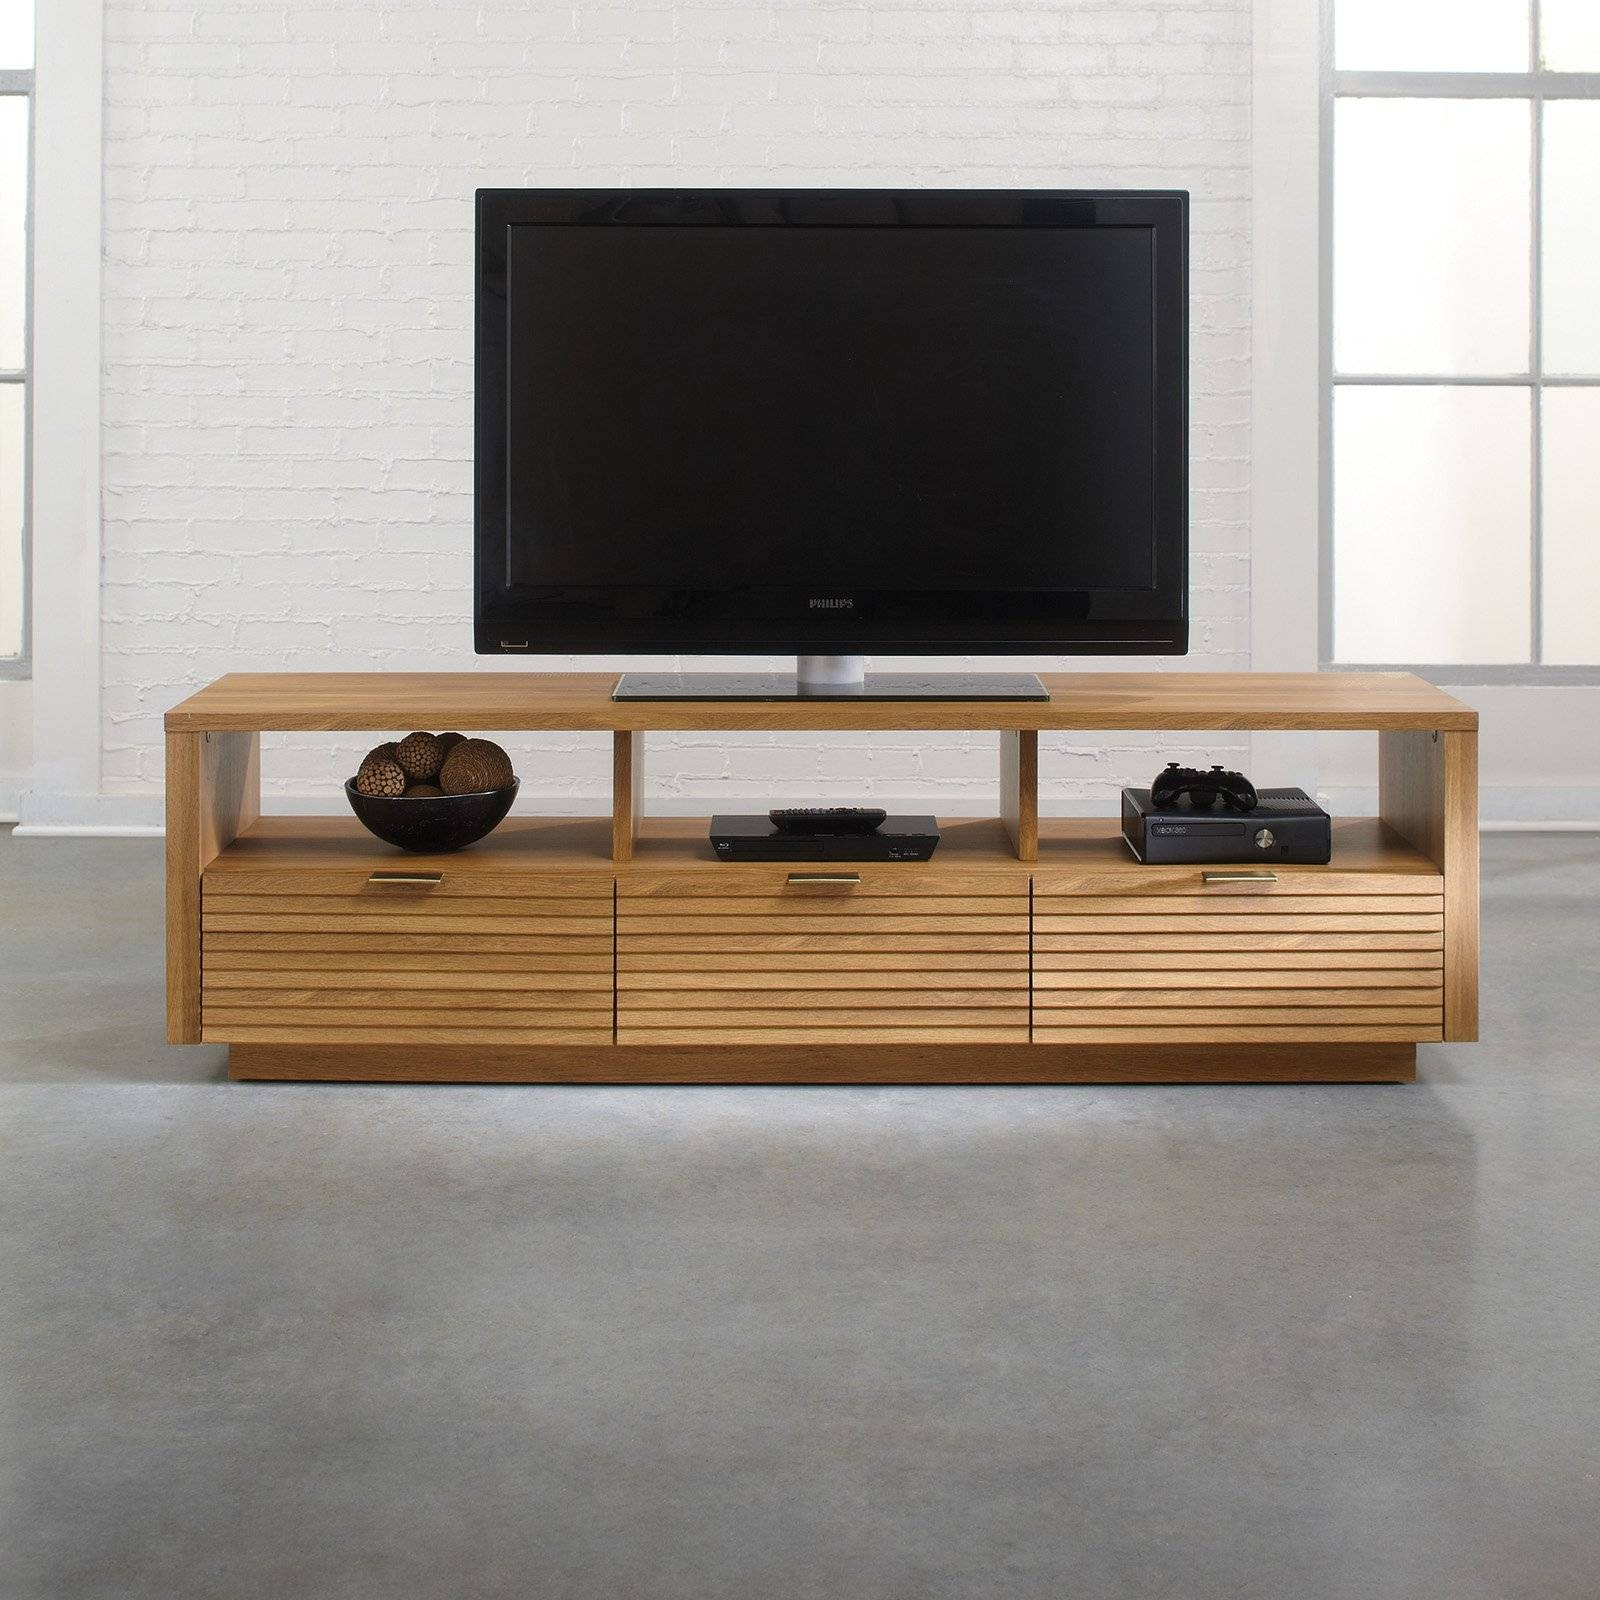 Sauder Soft Modern Entertainment Credenza - Pale Oak - Walmart with regard to Hokku Tv Stands (Image 4 of 15)